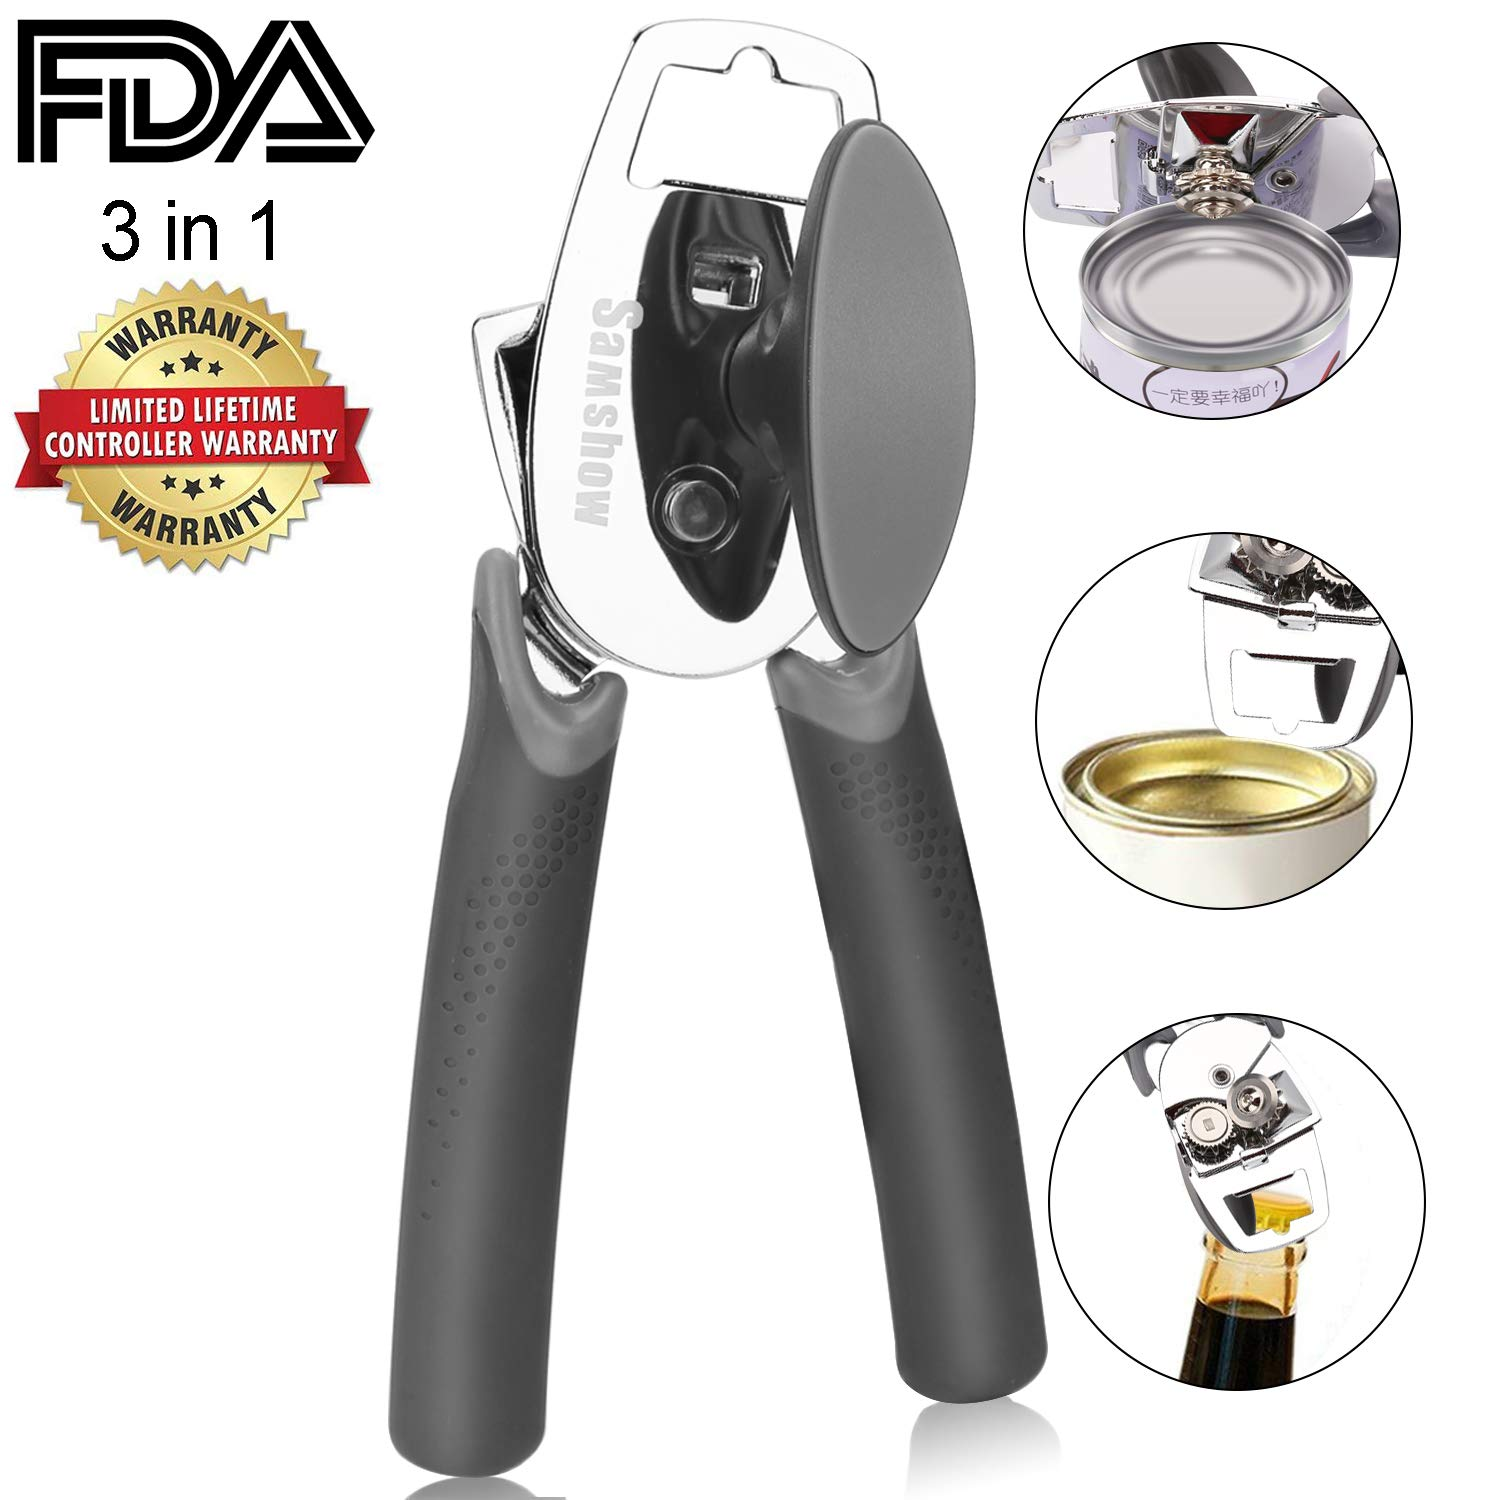 Can Opener - Samshow Stainless Steel Can Opener Manual Heavy Duty Tin Opener with Lids off Dishwasher Safe Can Opener Smooth Edge with Comfortable Ergonomic Non-Slip Handles Easy to Operate for Senior